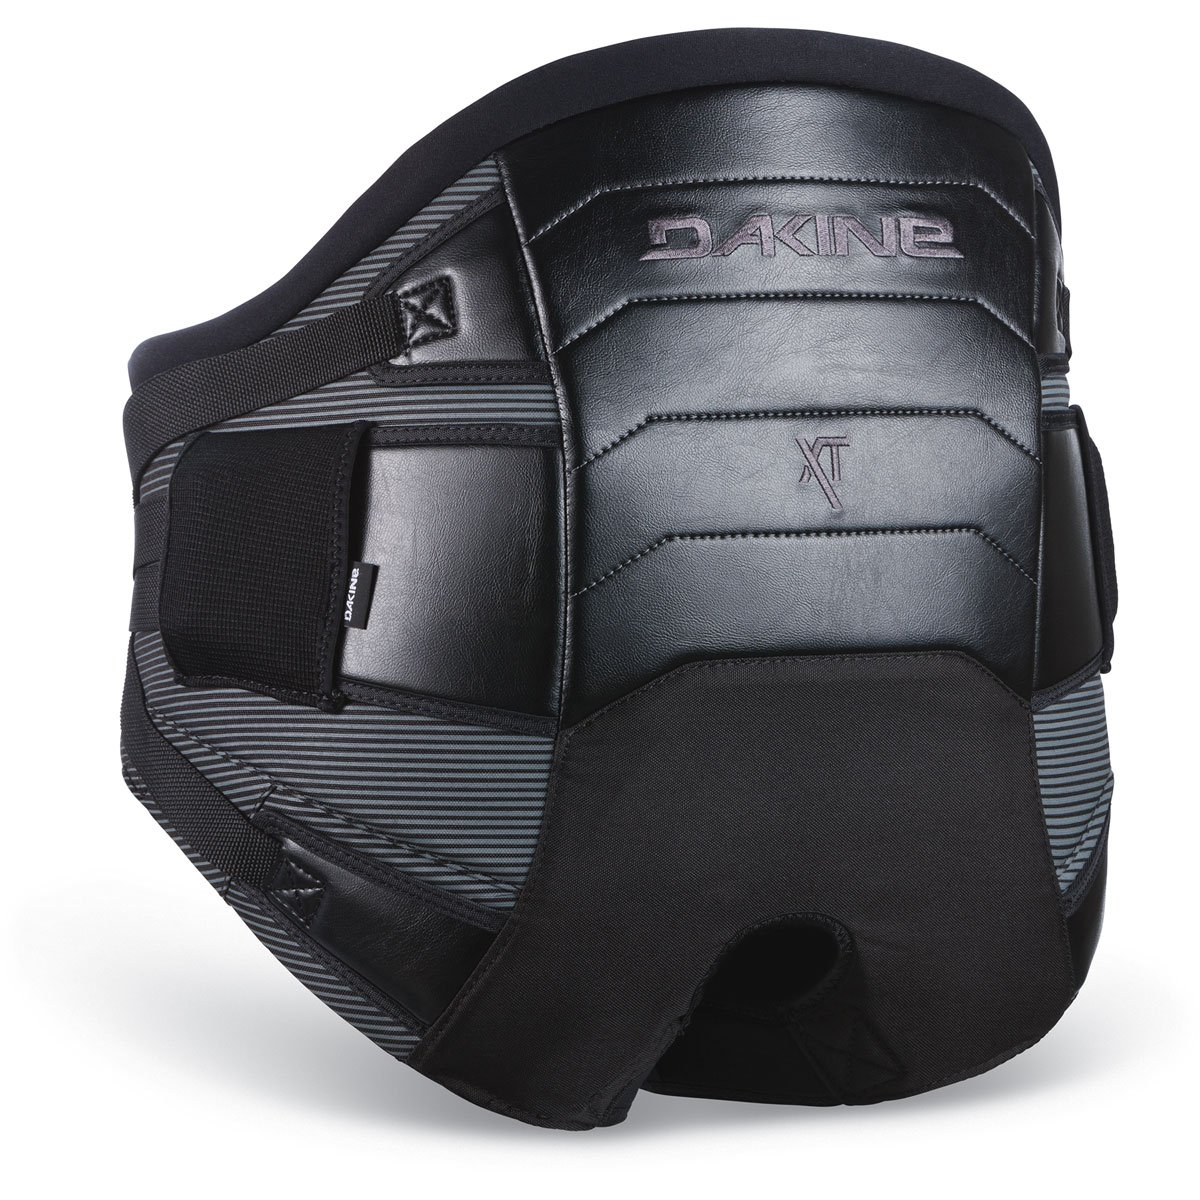 Dakine Men's XT Seat Windsurf Harness, Black, L by Dakine